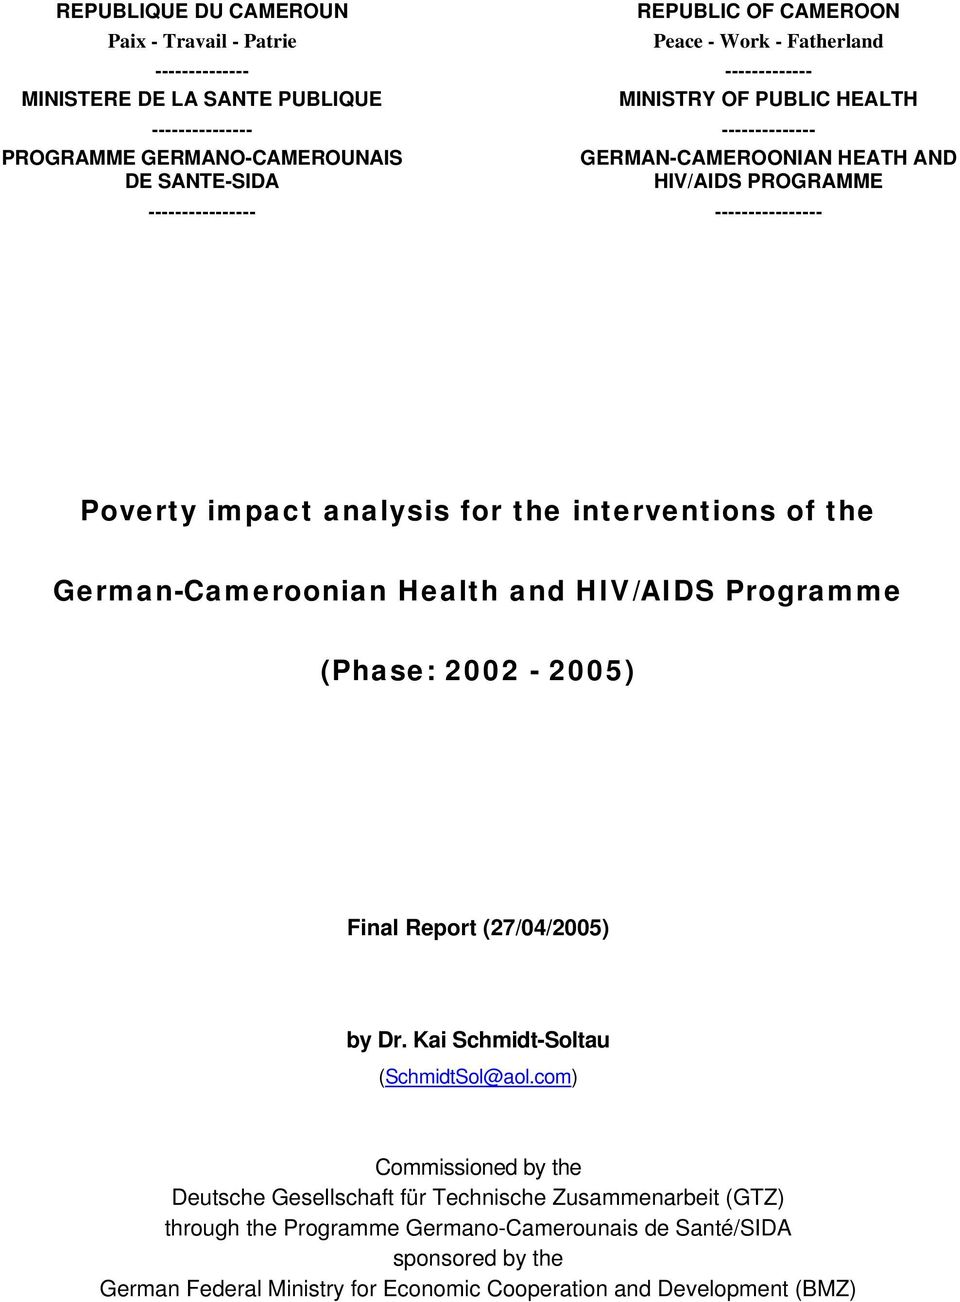 interventions of the German-Cameroonian Health and HIV/AIDS Programme (Phase: 2002-2005) Final Report (27/04/2005) by Dr. Kai Schmidt-Soltau (SchmidtSol@aol.